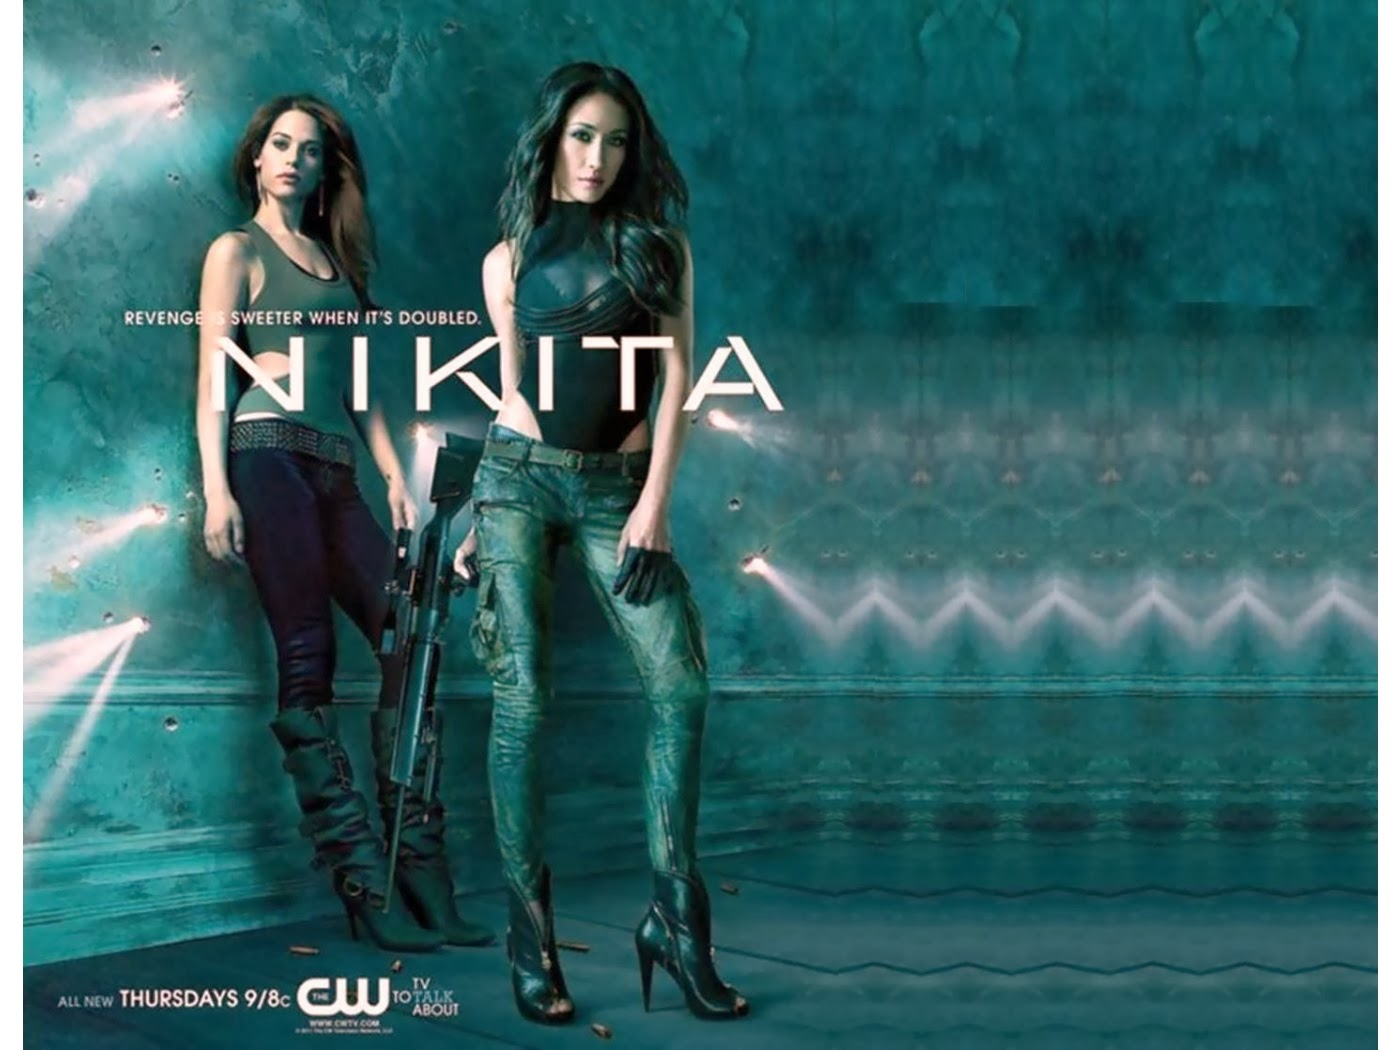 wallpaper_nikita_season_1-1400x1050.jpg (1400×1050)